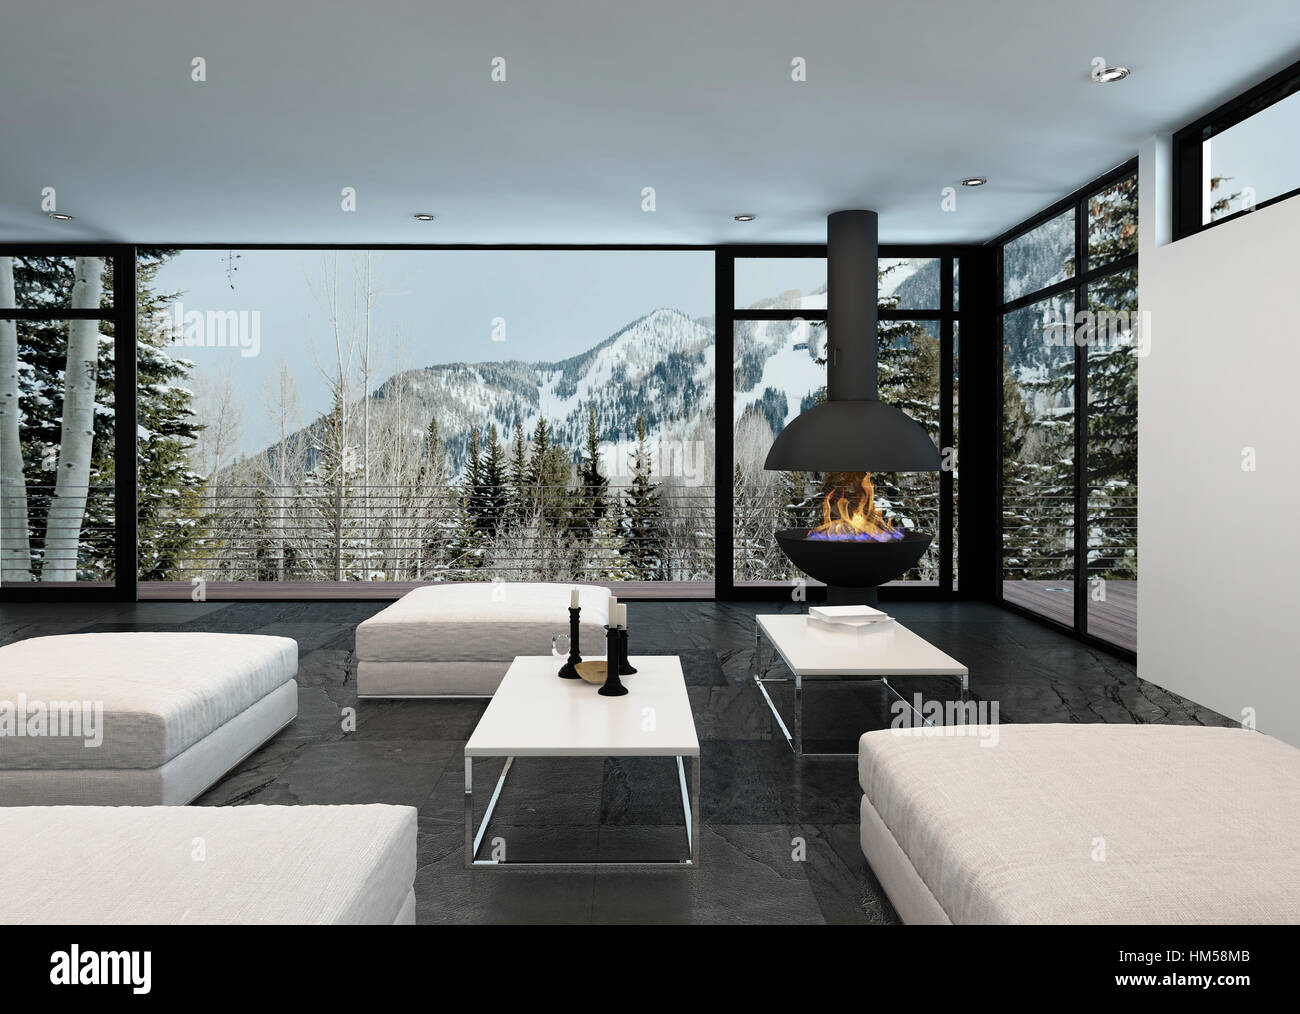 Cozy Stylish Living Room Interior In A House In The